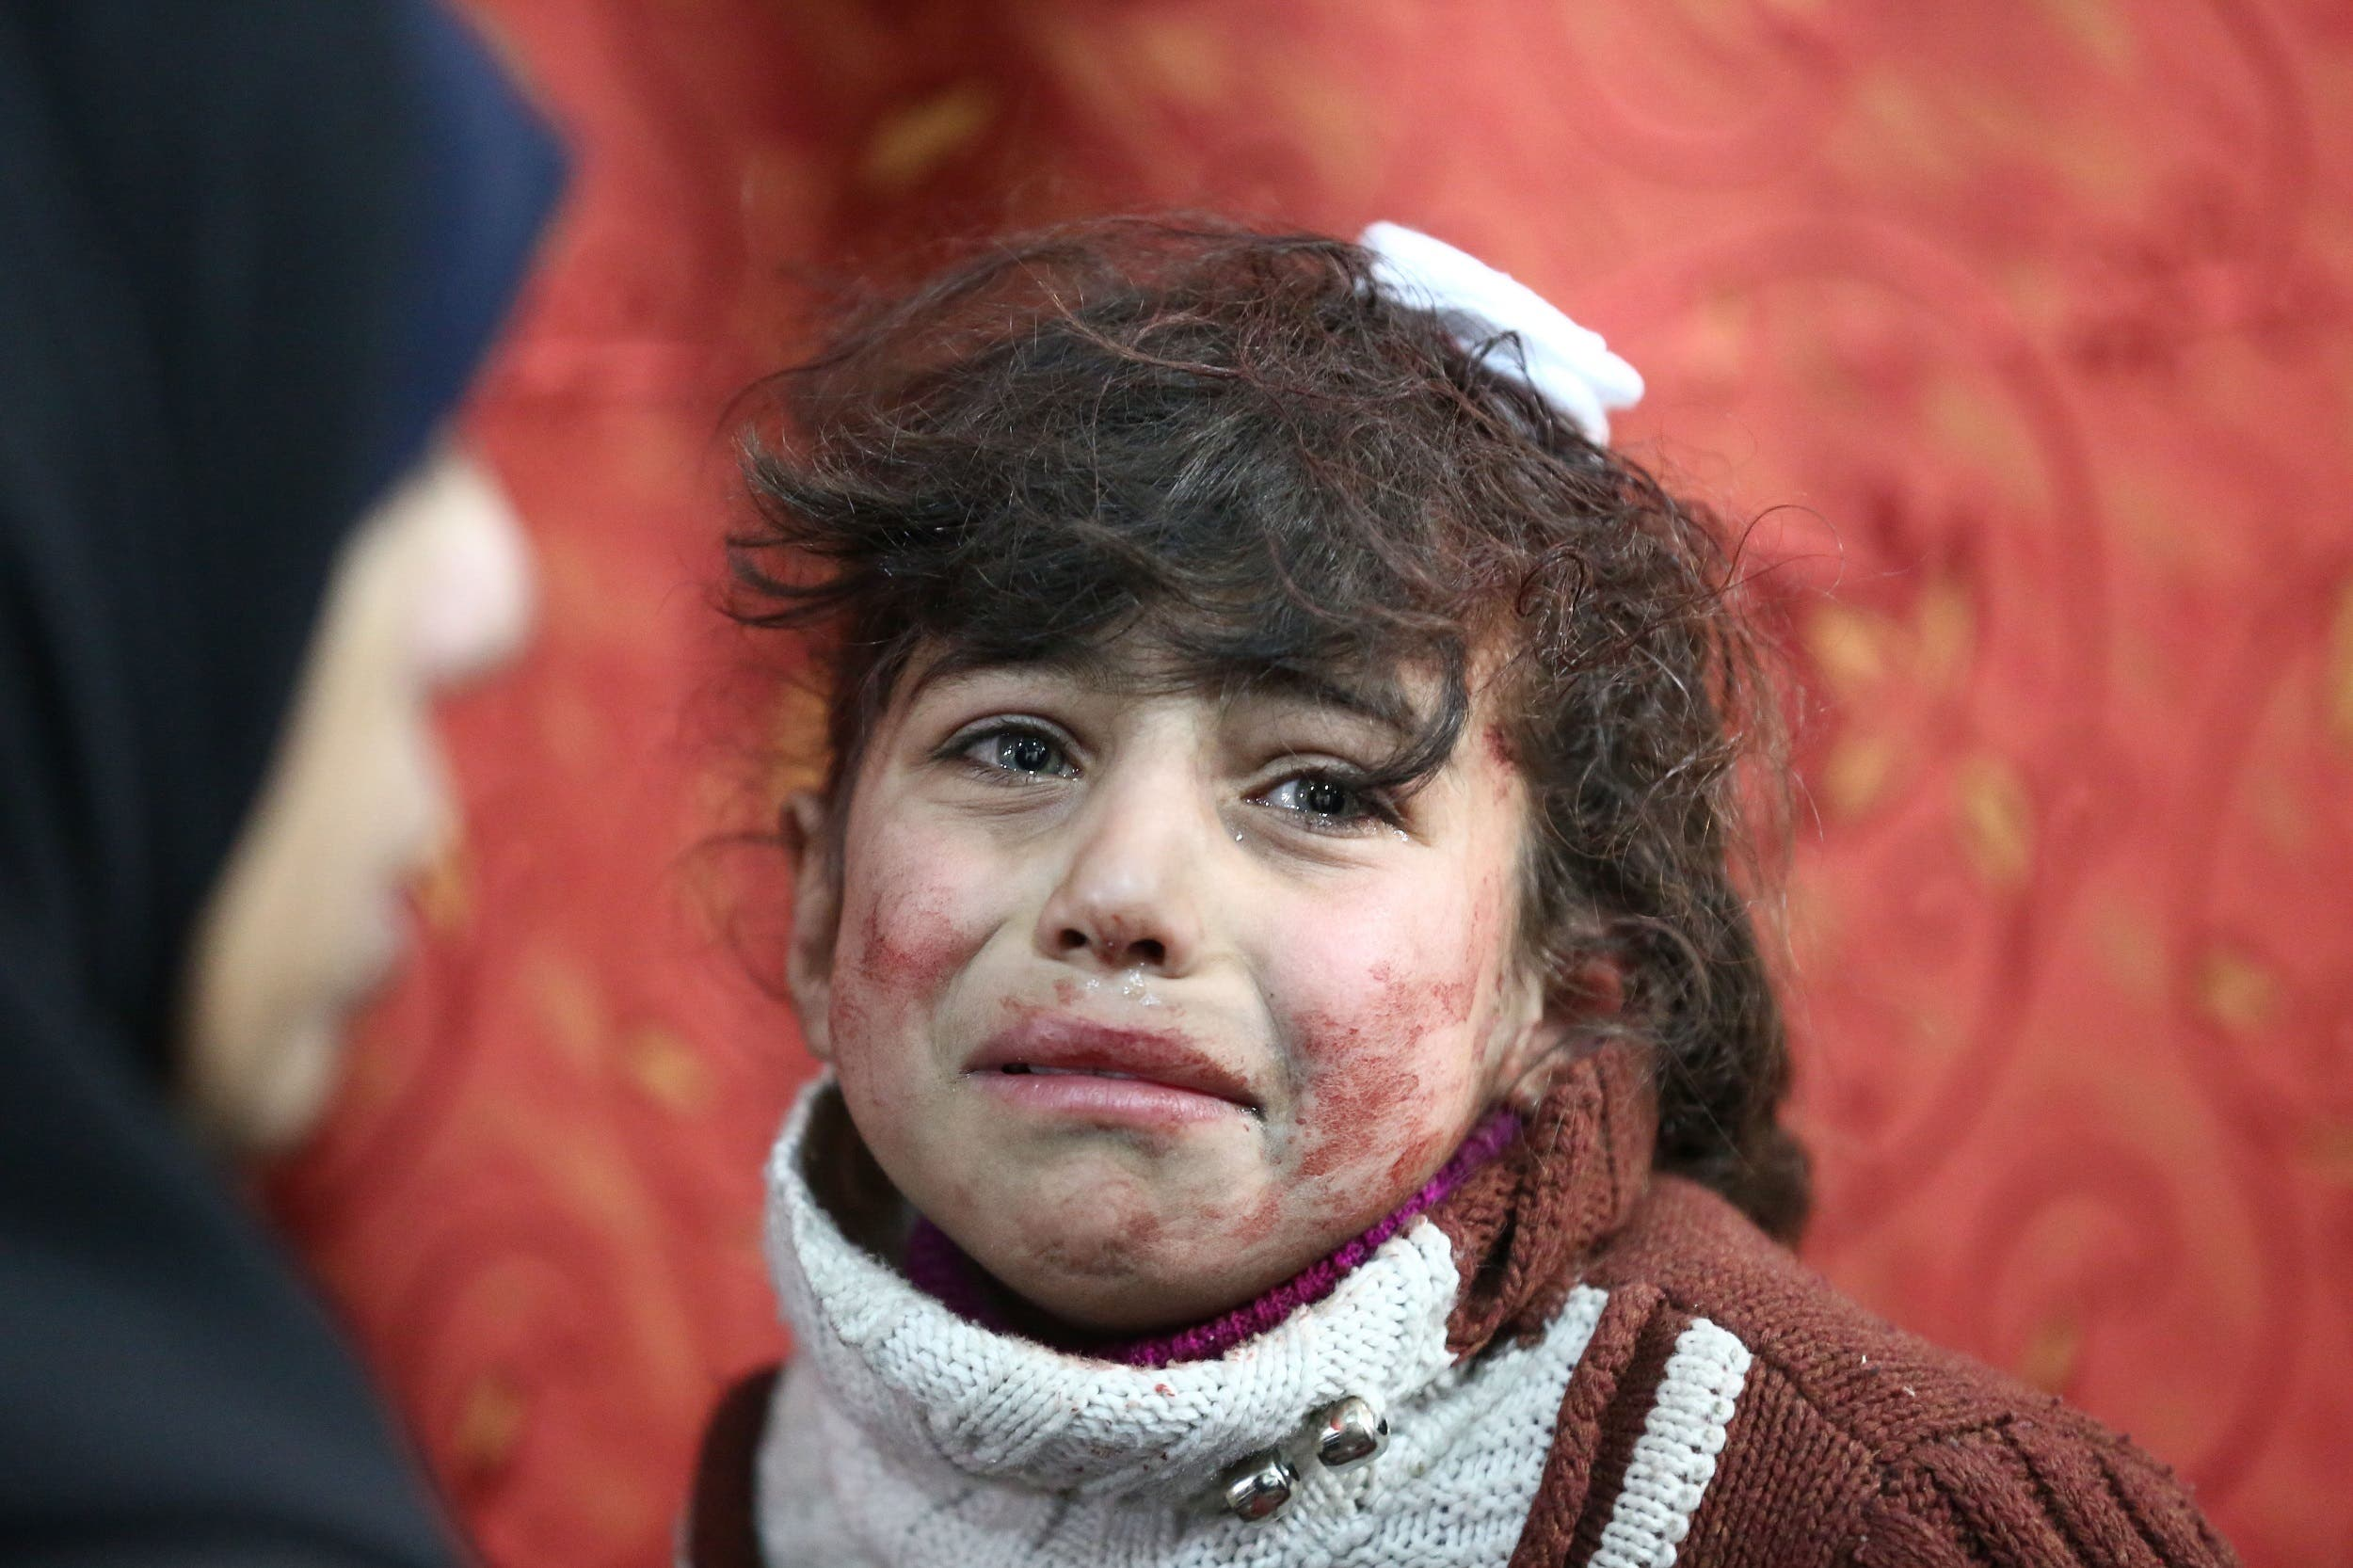 Hala, 9, receives treatment at a makeshift hospital following Syrian government bombardments in Eastern Ghouta on February 22, 2018. (AFP)